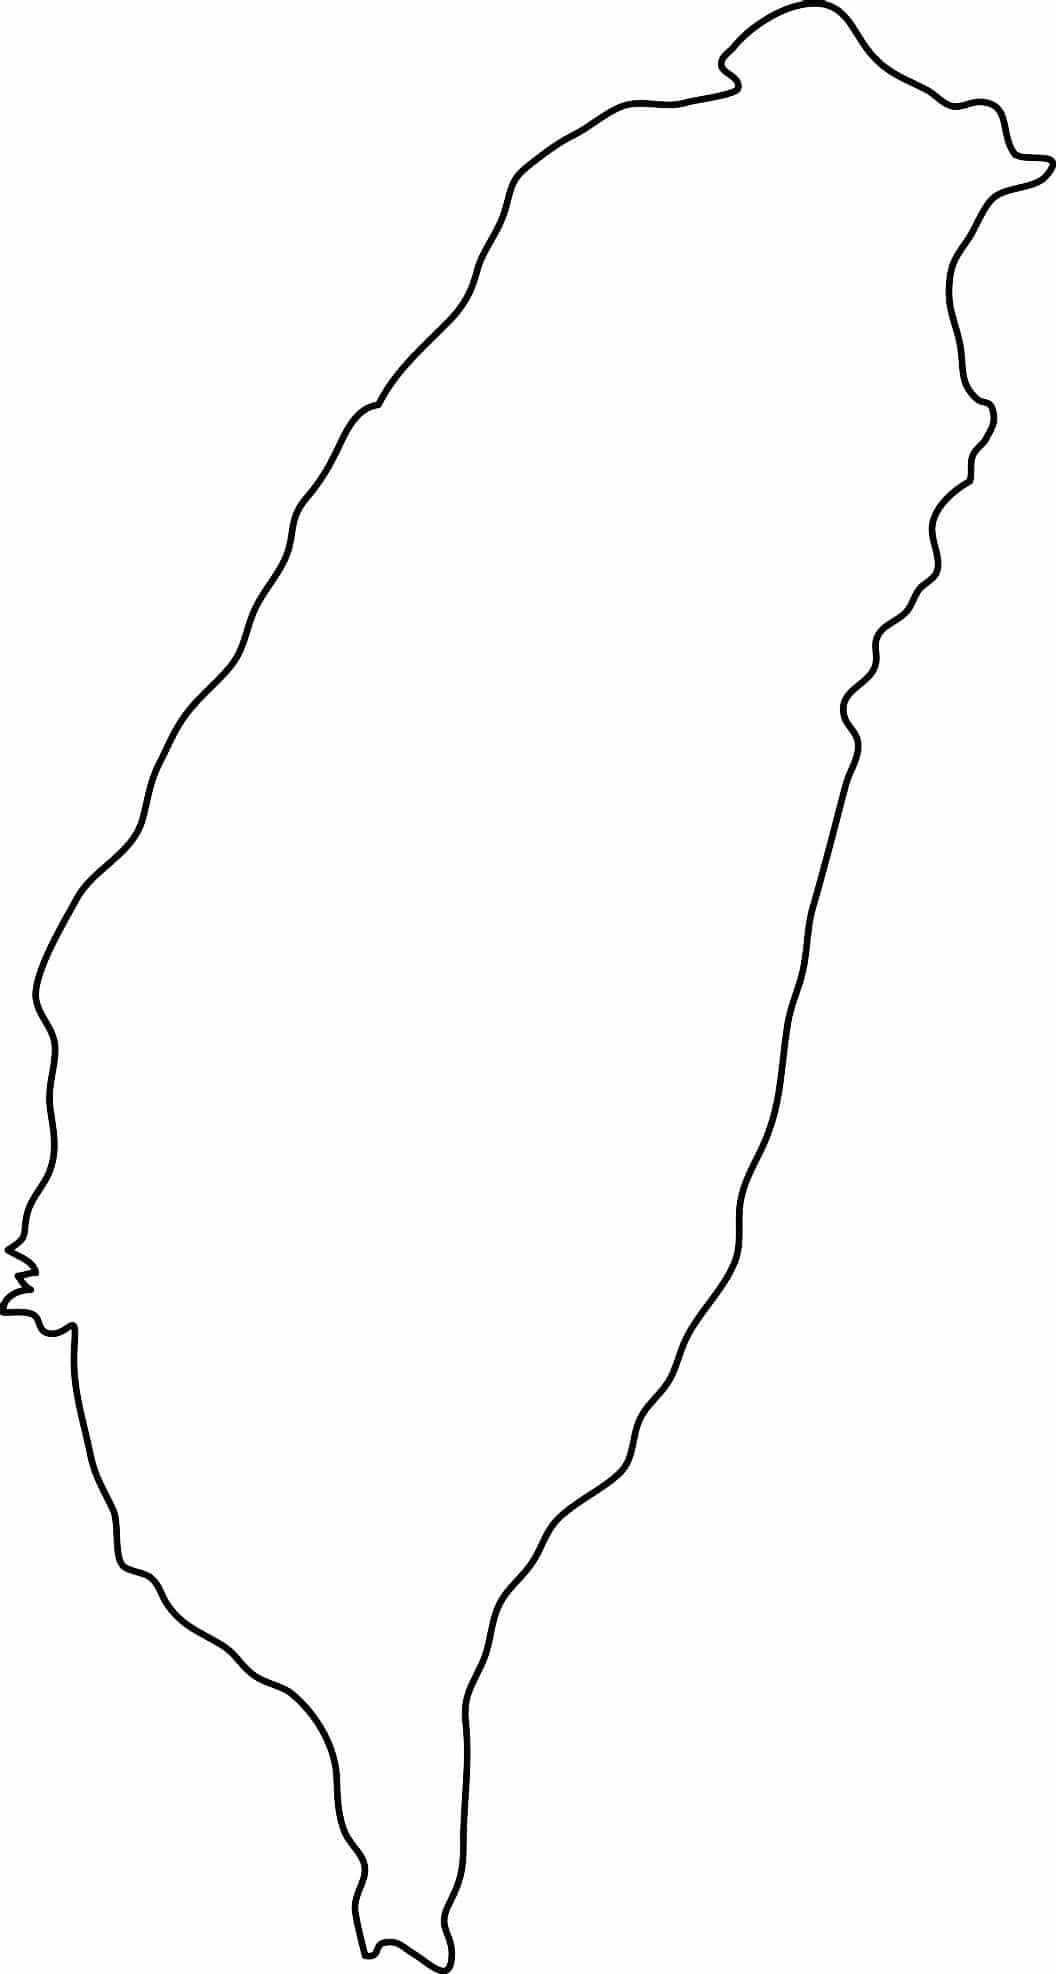 Outline map of Taiwan